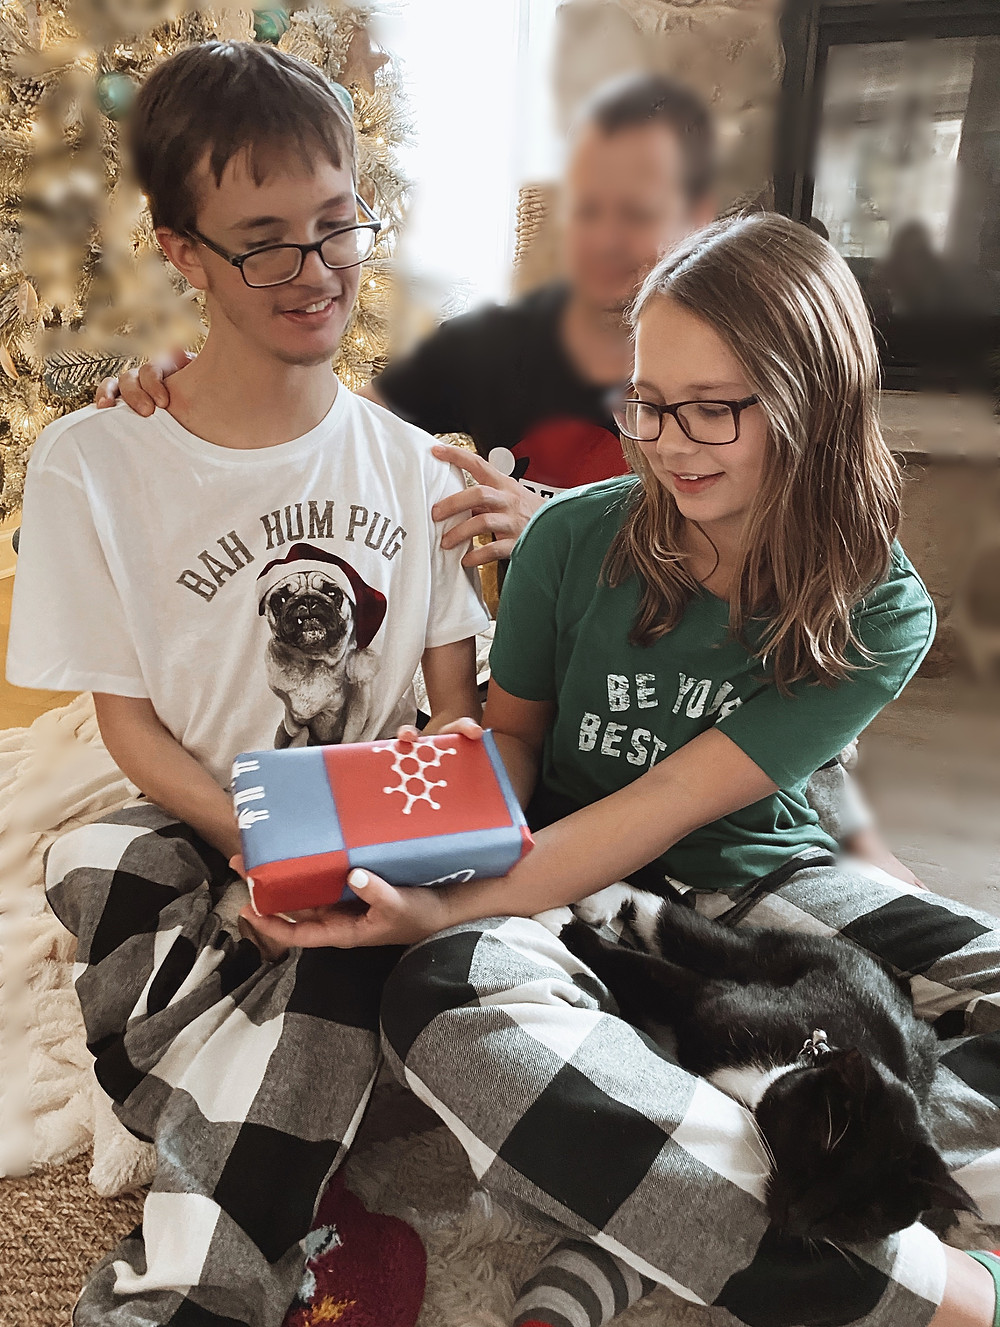 The Friedreich's Ataxia Research Alliance is a non-profit organization dedicated to researching a cure for FA. Give the gift of research.